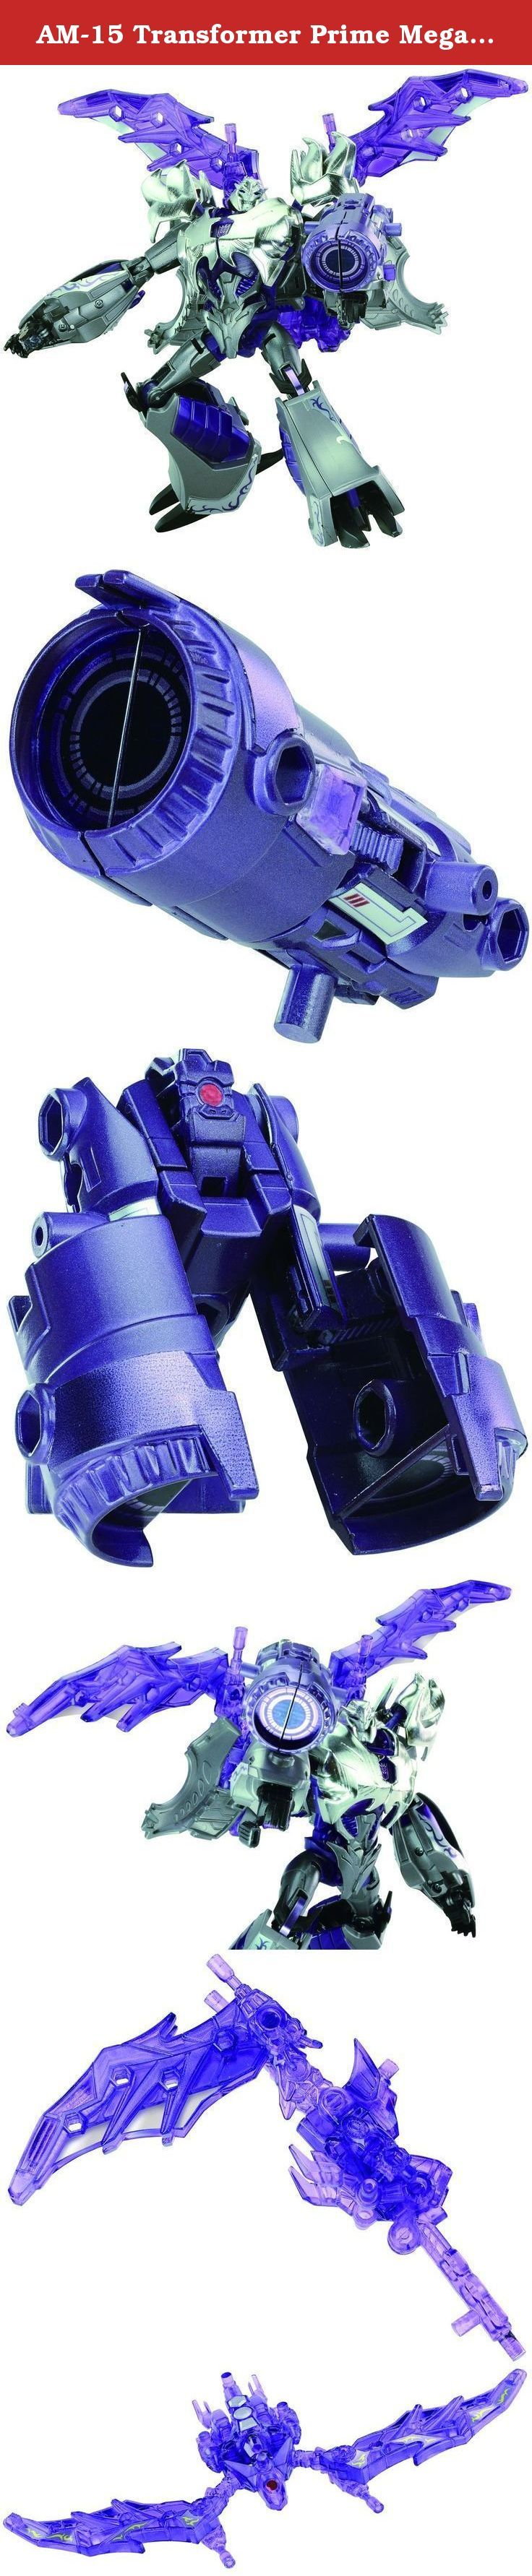 AM-15 Transformer Prime Megatron Darkness (Completed) Tomy [JAPAN]. Power up your Transformers collection with the awesome Transformers AM-15 Megatron Darkness Action Figure. Look for the Jet Vehicon figure too for the perfect duo.